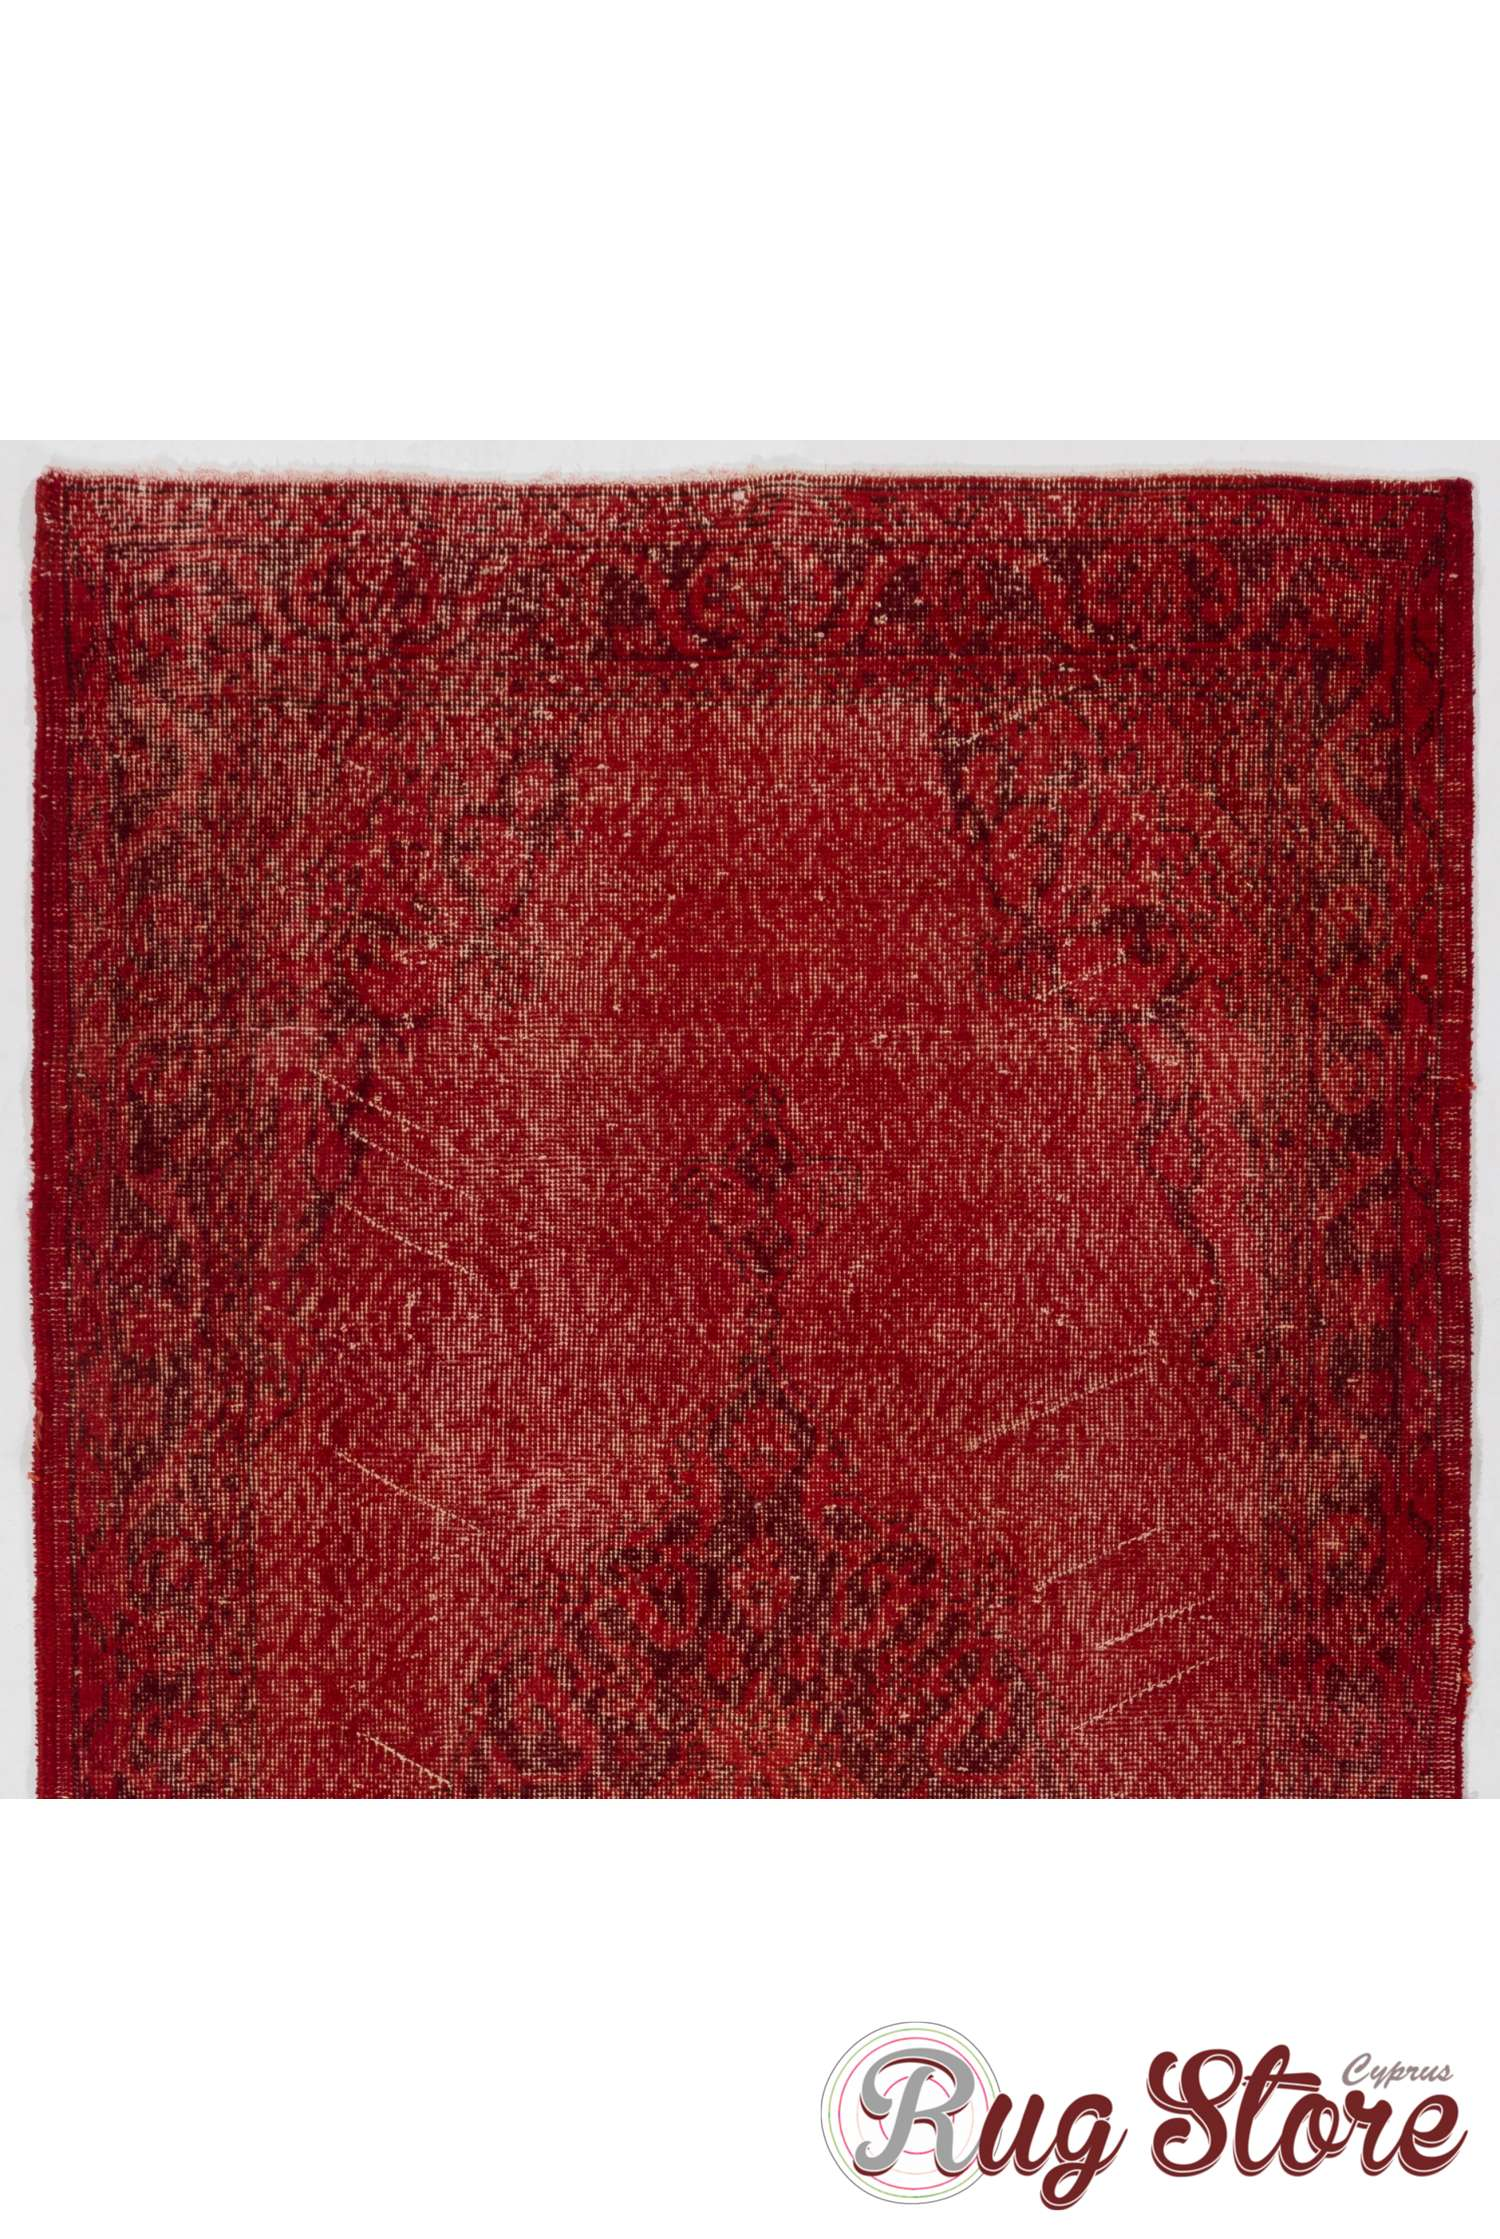 Red Color Vintage Overdyed Handmade Turkish Rug Red